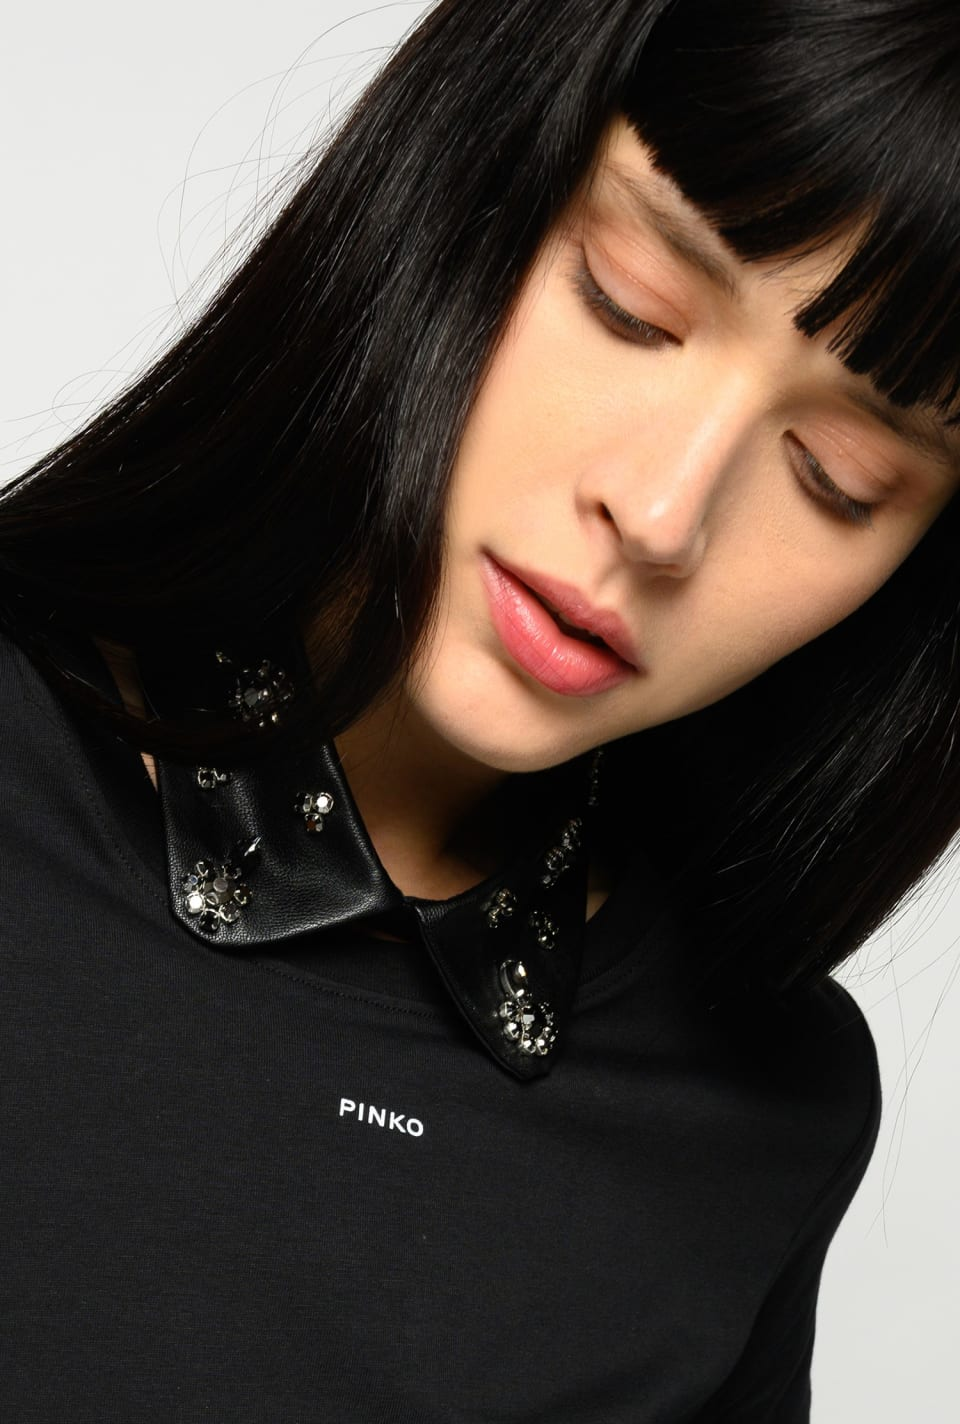 Leather-look collar with jewel embroidery - Pinko